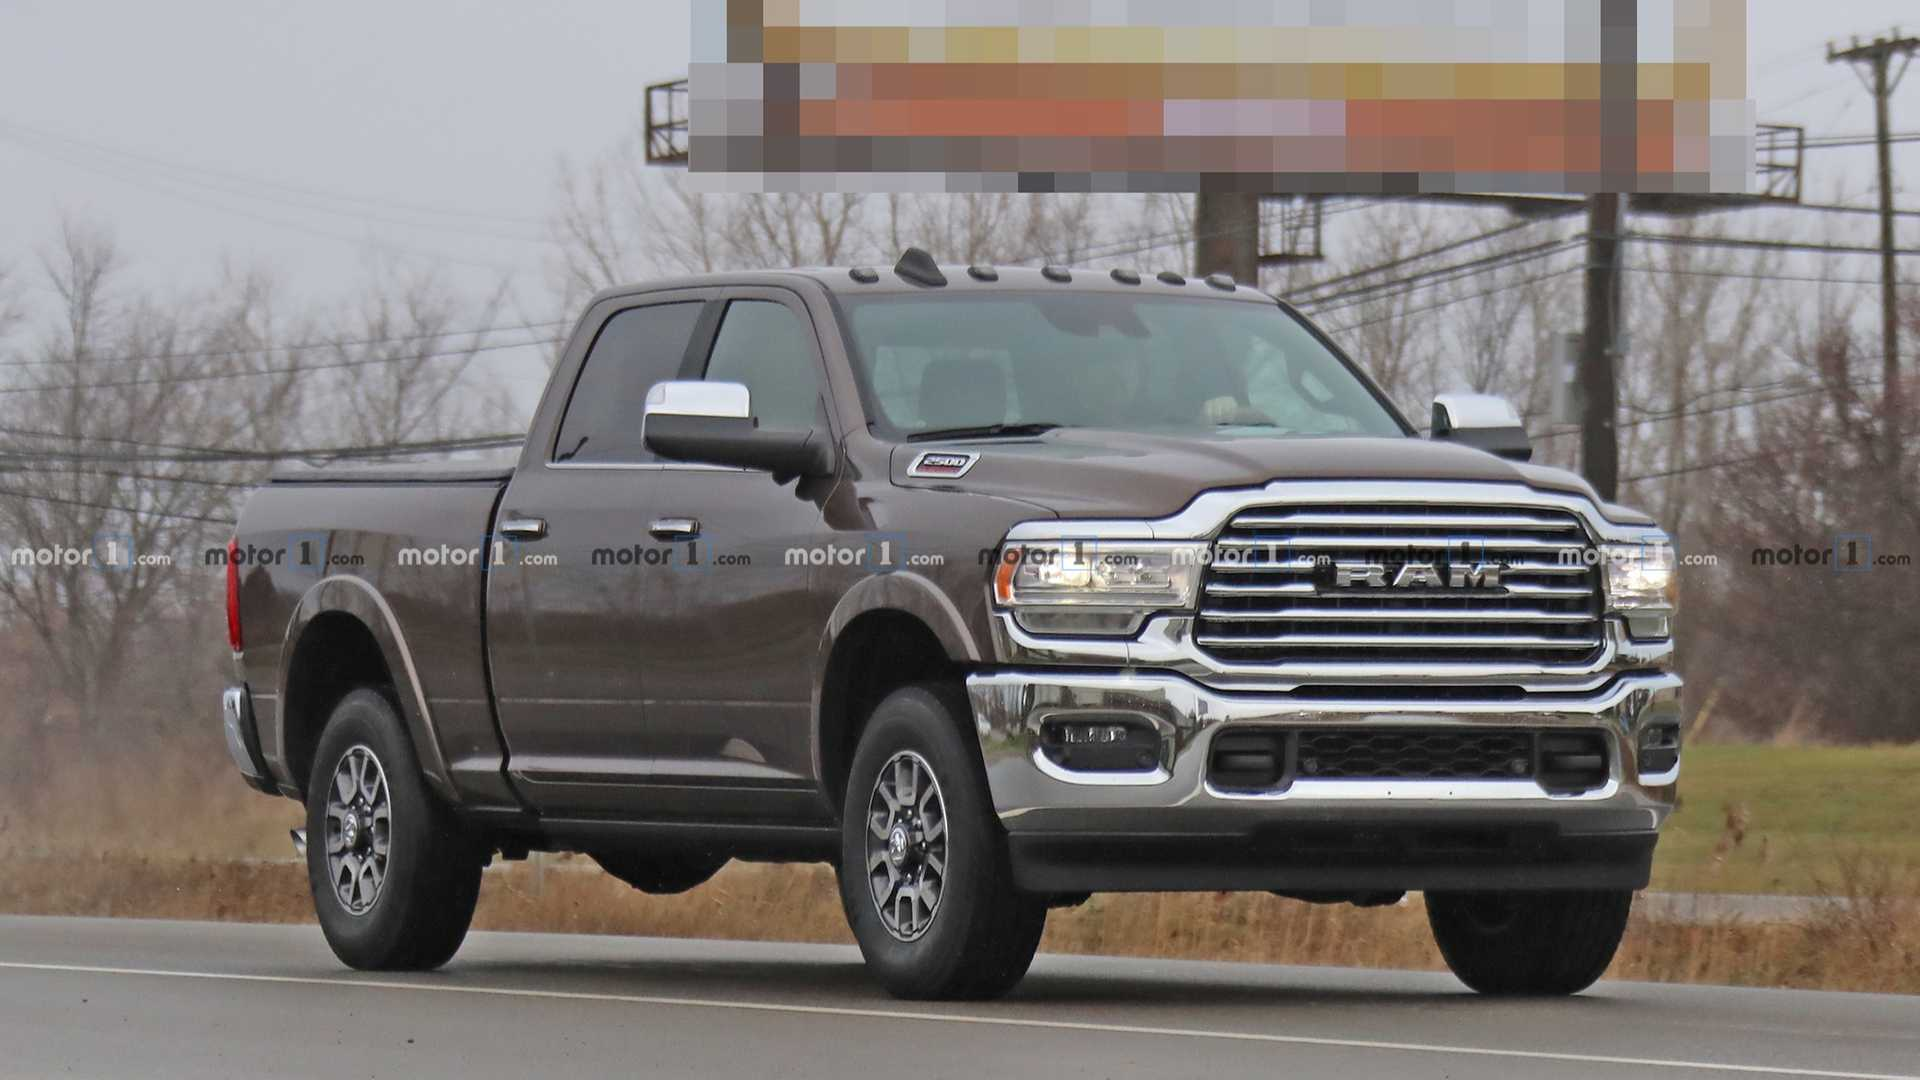 75 Best 2020 Dodge Ram 2500 Price Design And Review